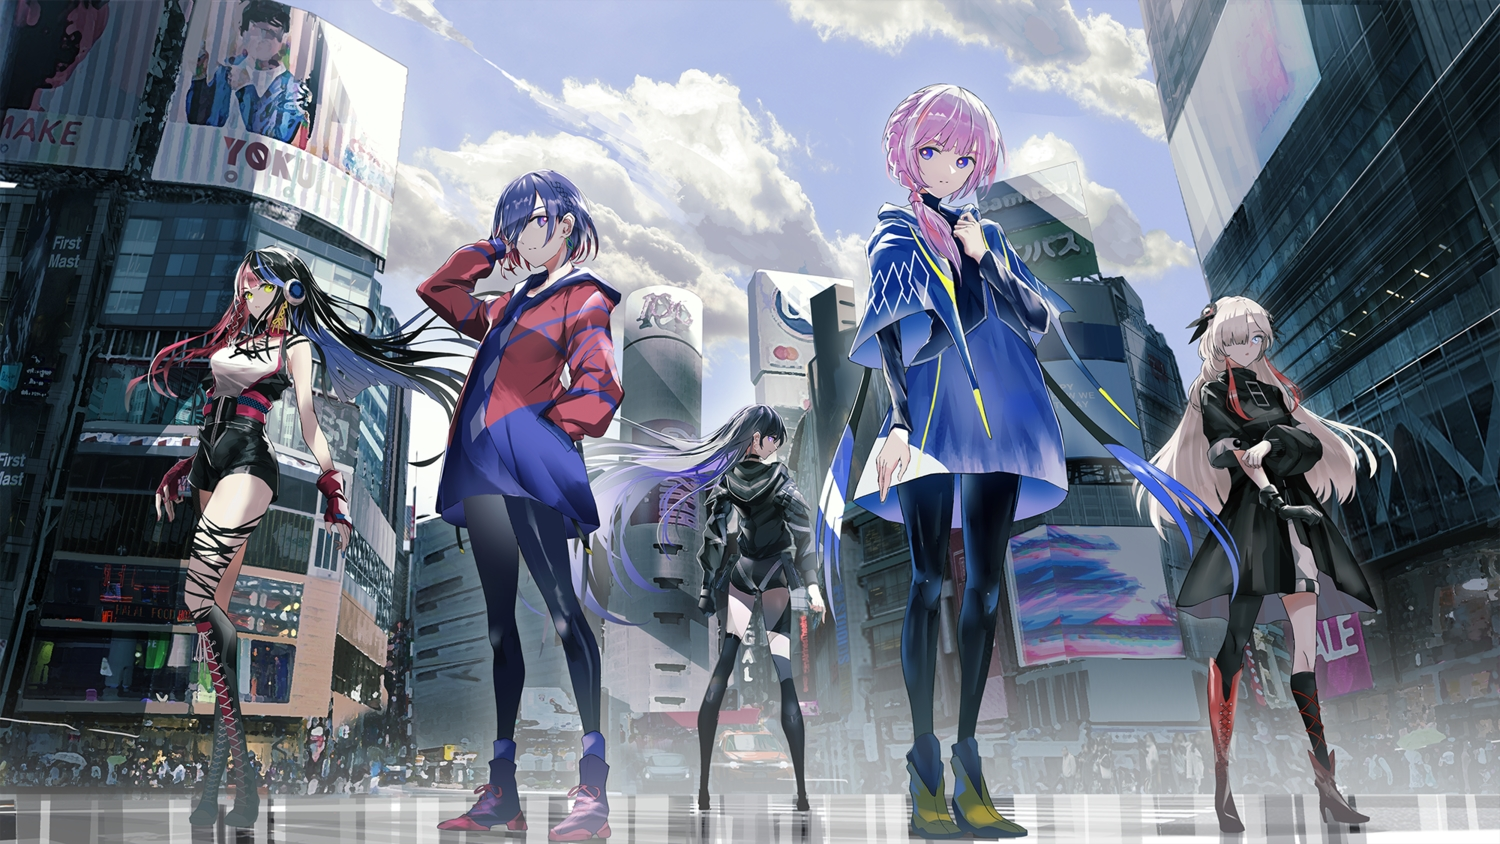 black_hair blue_hair boots building city clouds gloves group harusaruhi headphones isekai_joucho kaf kamitsubaki_studio koko_(vtuber) long_hair ponytail purple_eyes purple_hair rim_(vtuber) sky swav thighhighs virtual_kaf